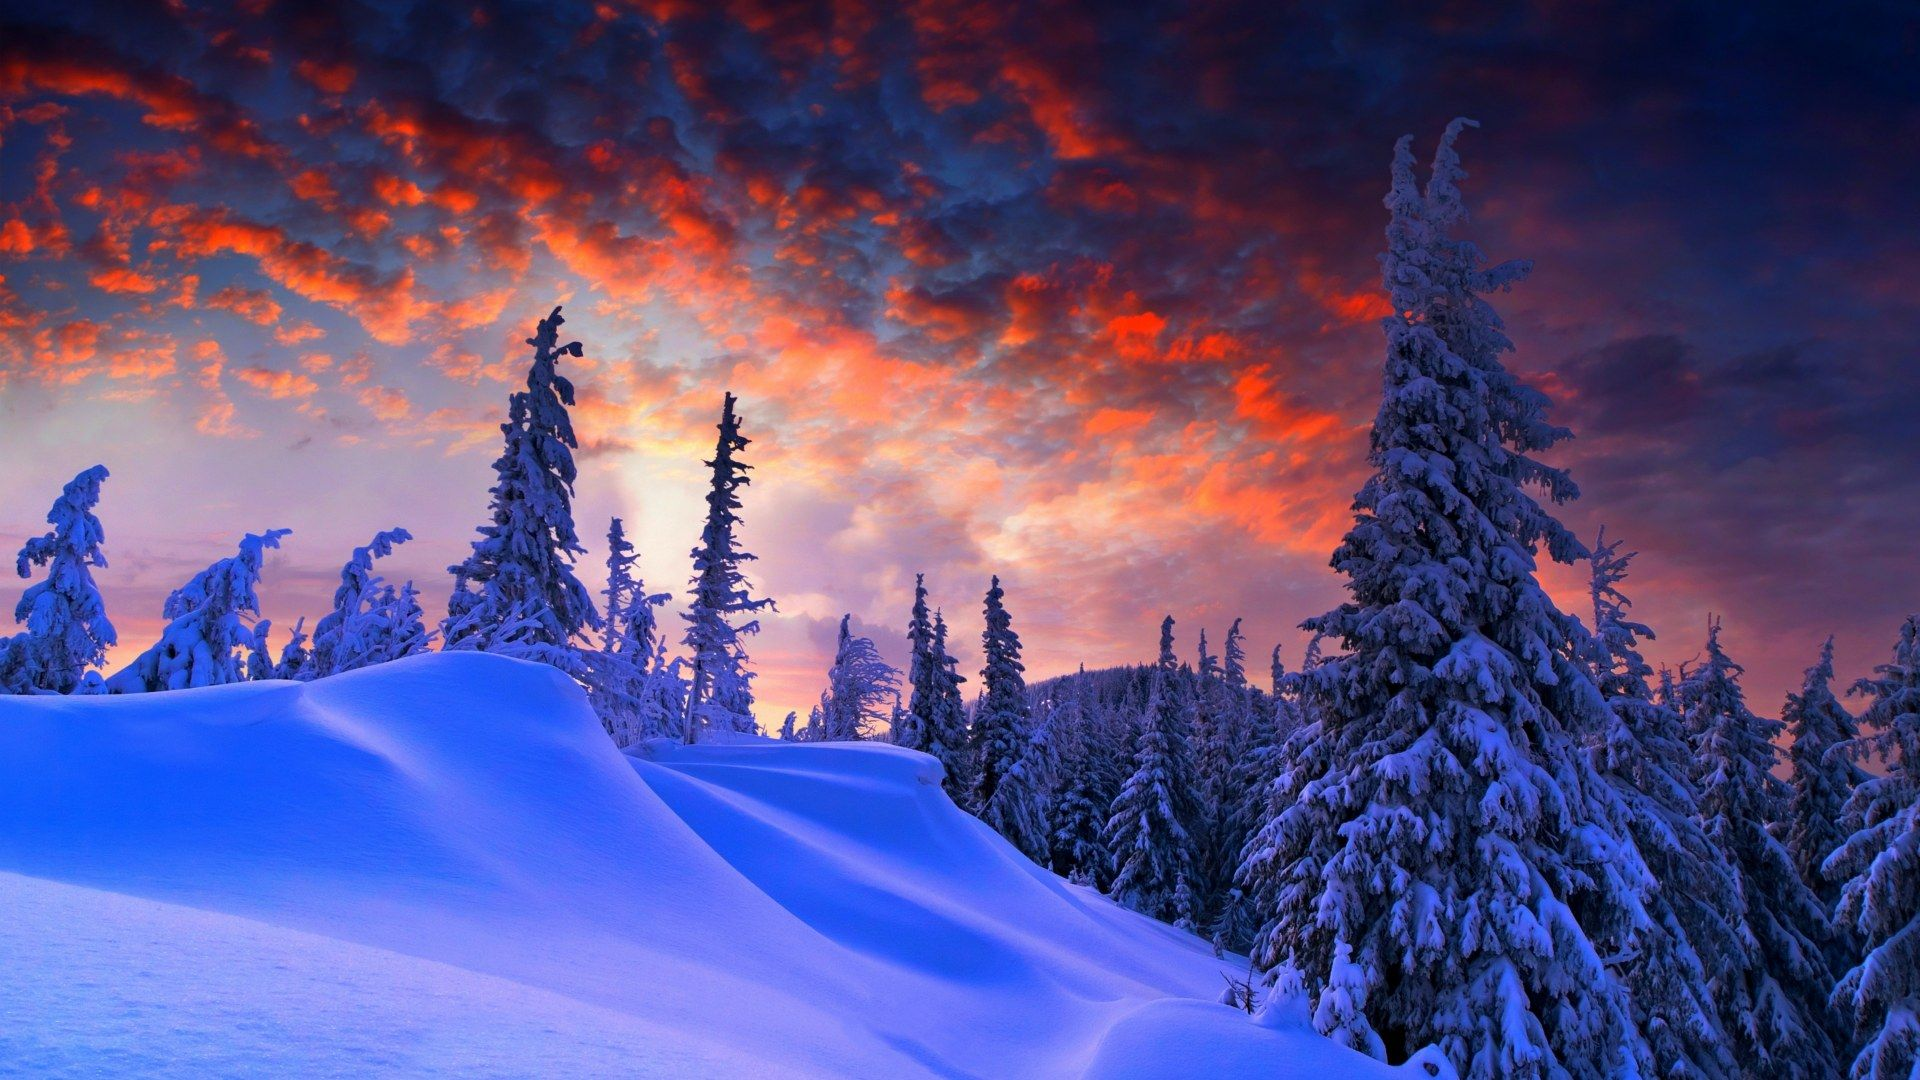 Evening Of Winter 1920x1080 Winter Wallpaper Digital Wallpaper Winter Scenes